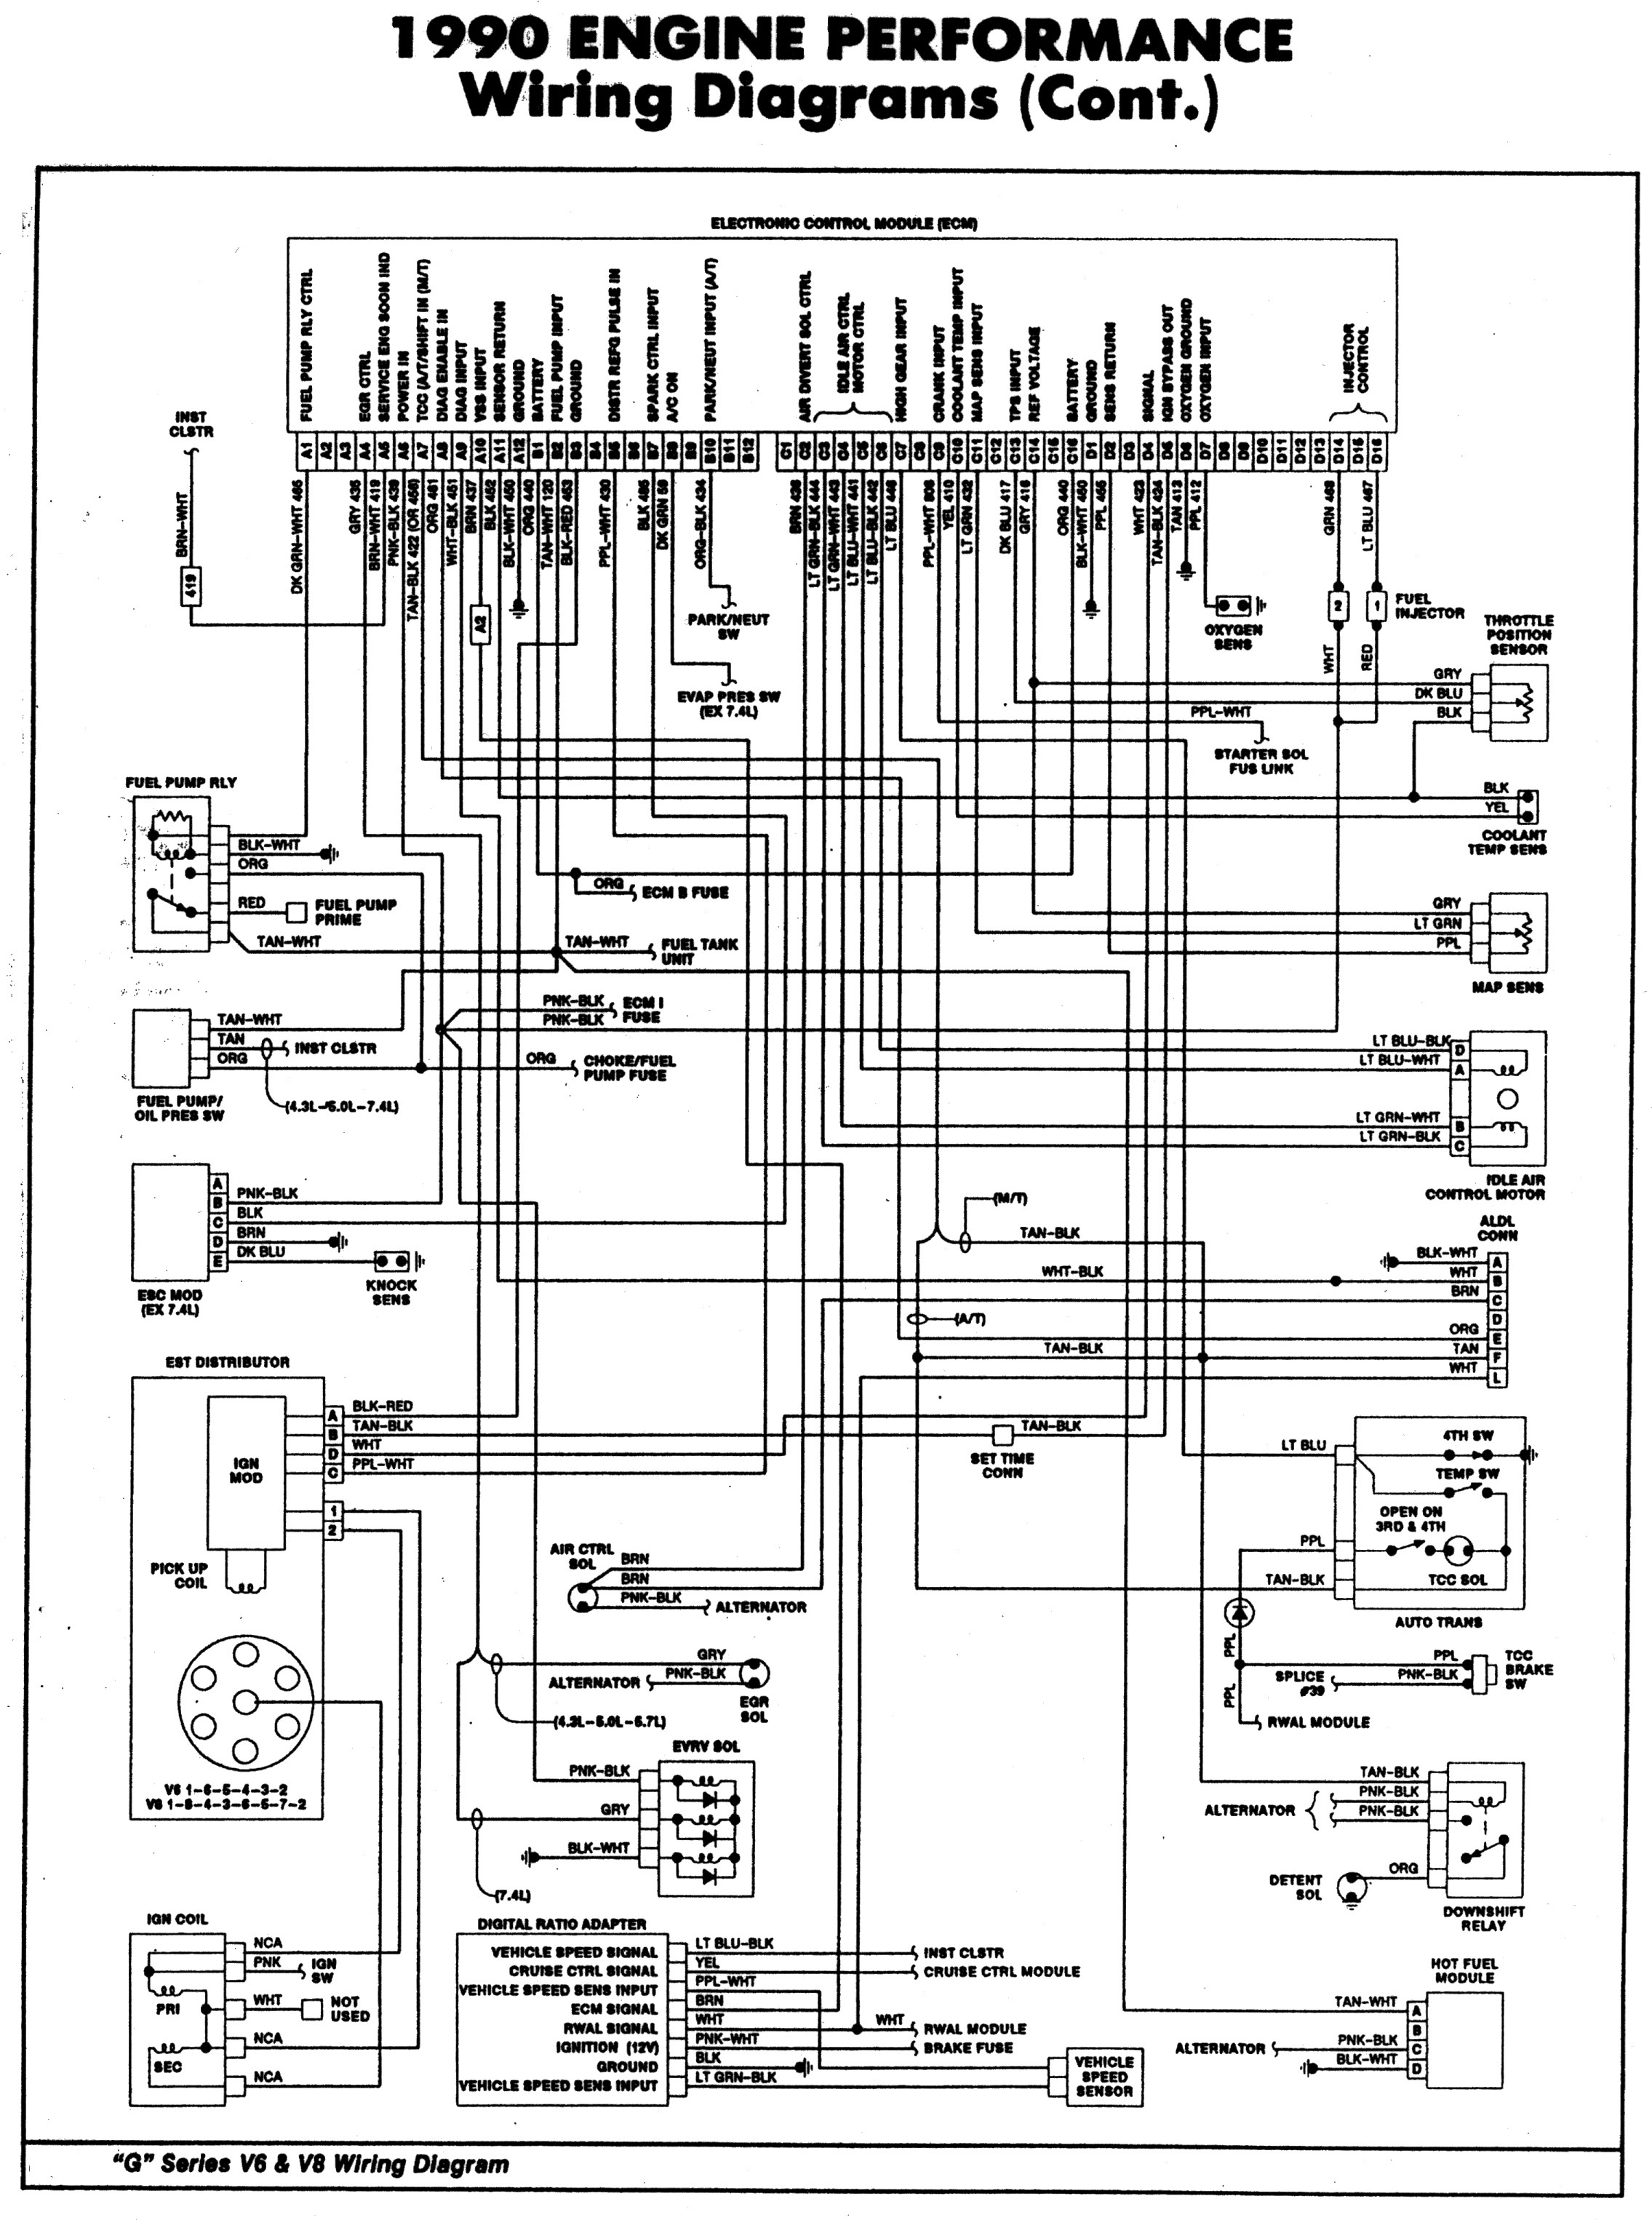 ignitiondiagram 1990 chevy suburban tbi 350 installation land rh pinterest  com 2007 suburban engine diagram 2008 suburban engine diagram